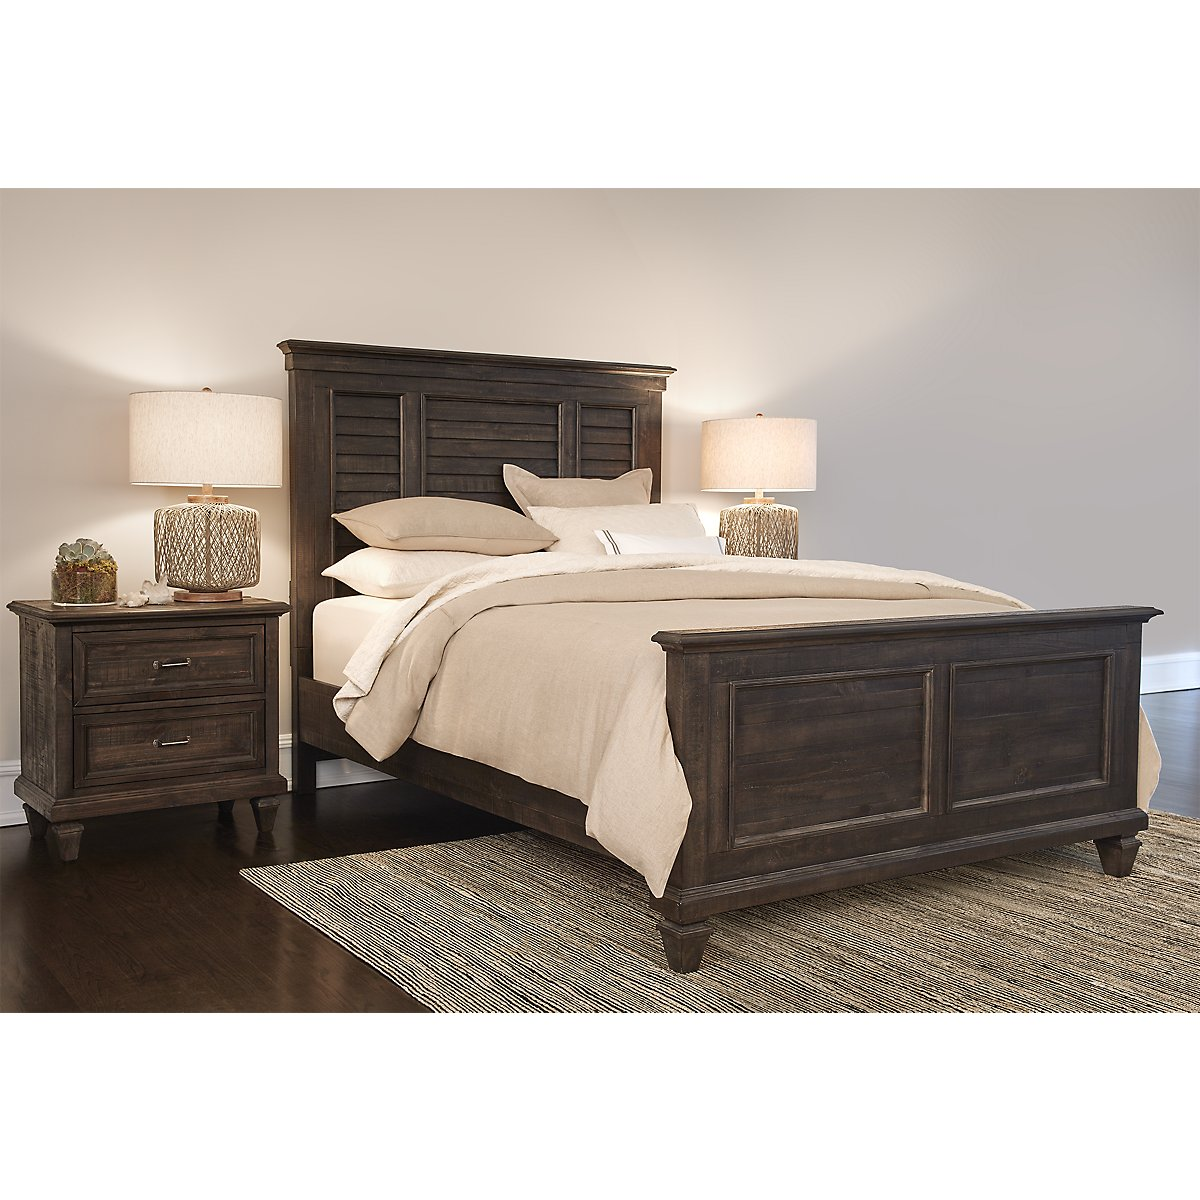 Sonoma Dark Tone Wood Panel Bed